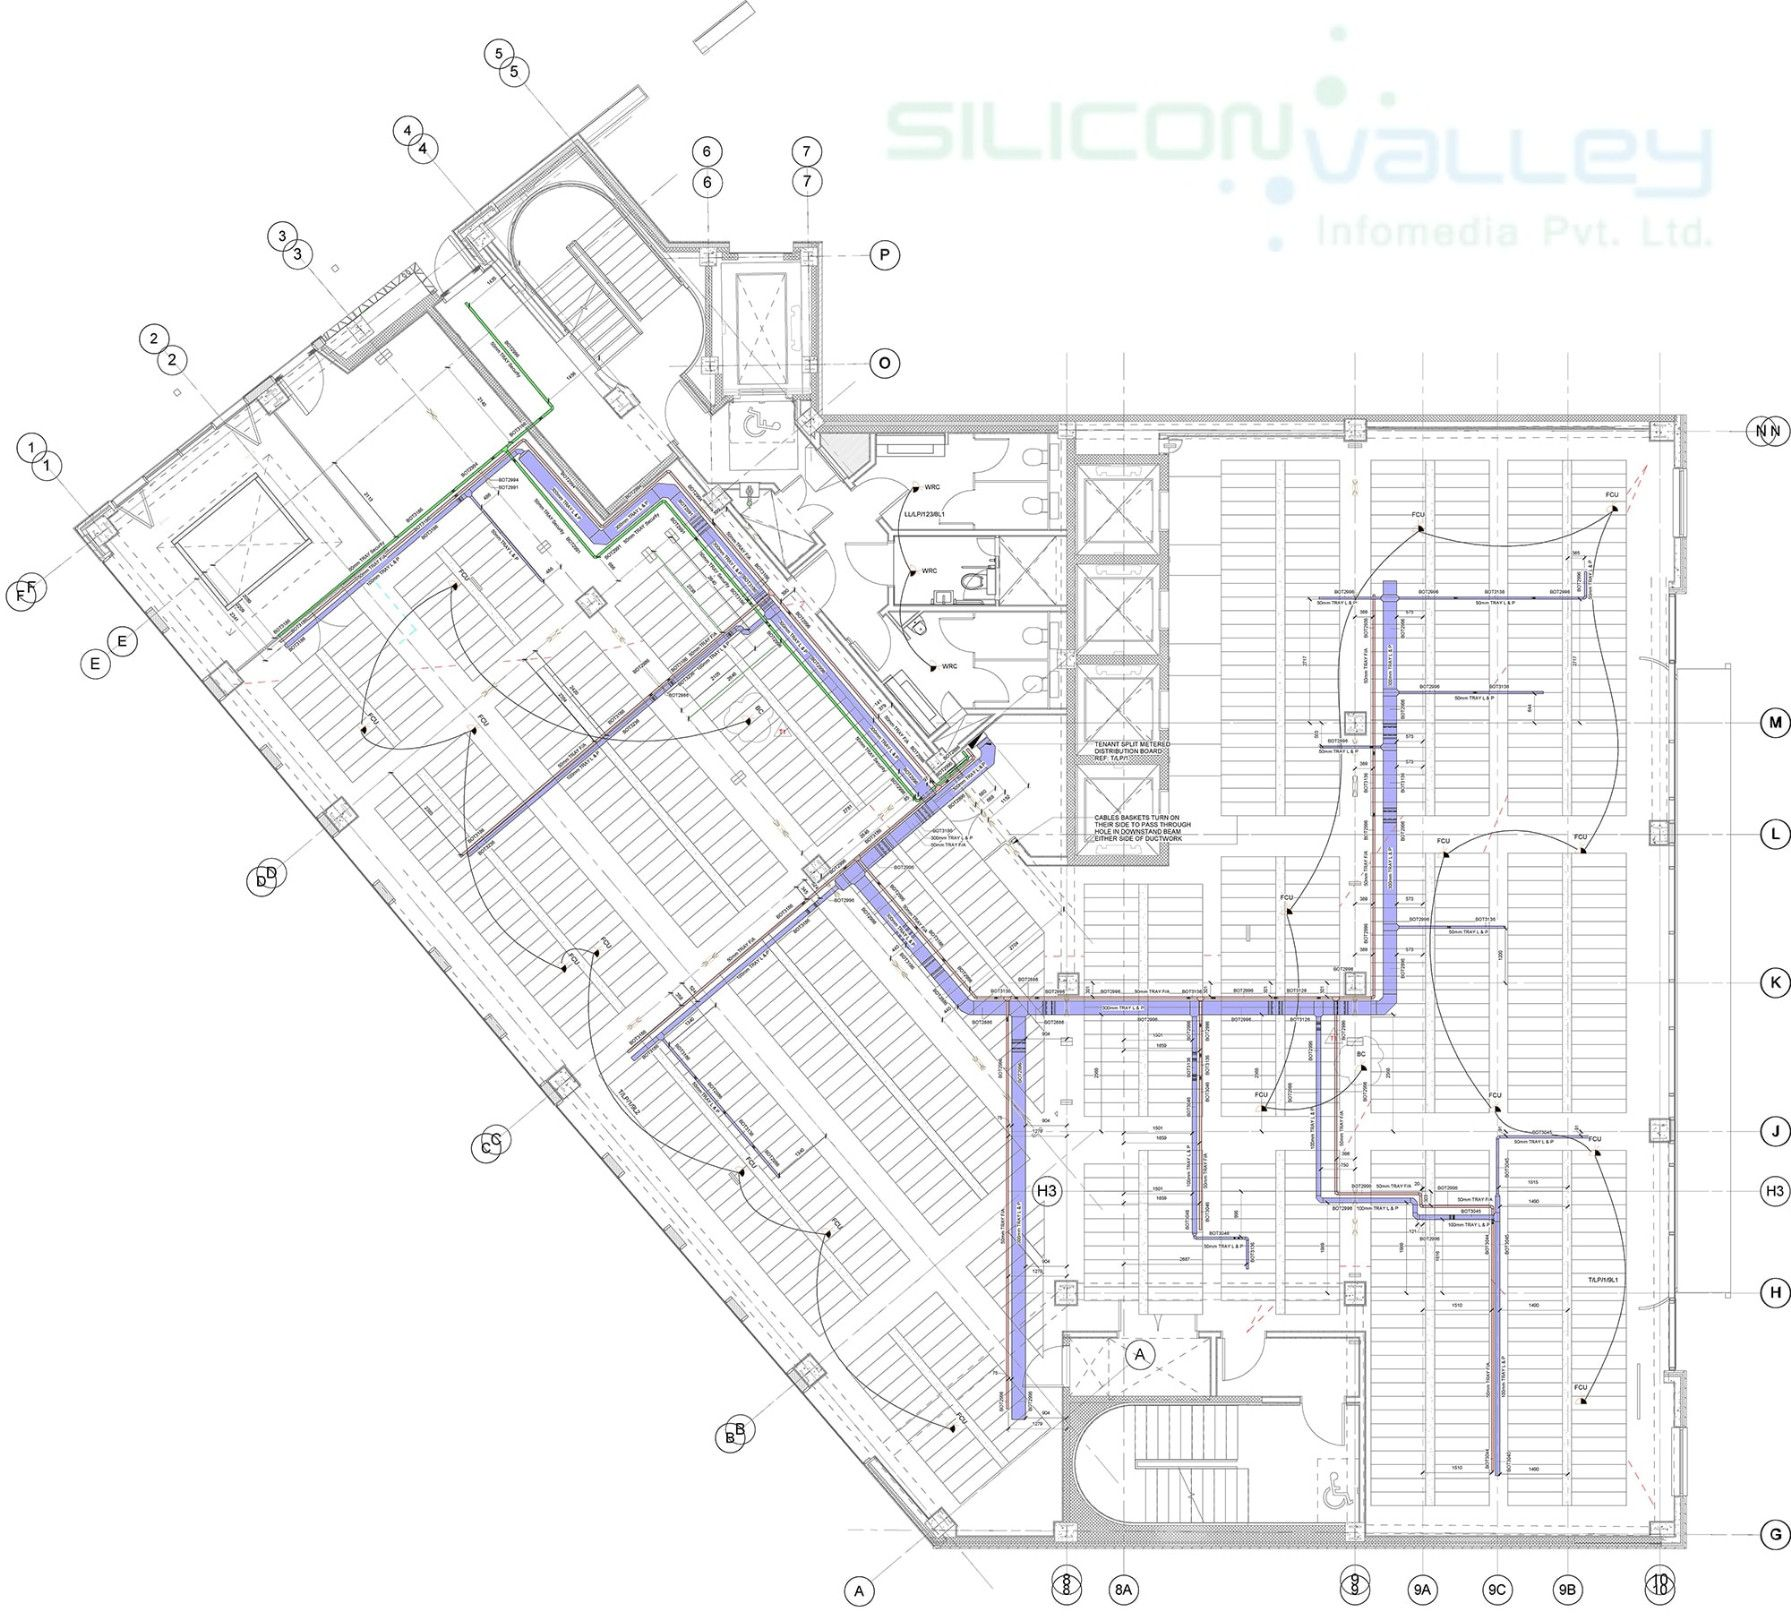 Silicon Info Provides Mep Shop Drawing Detailing